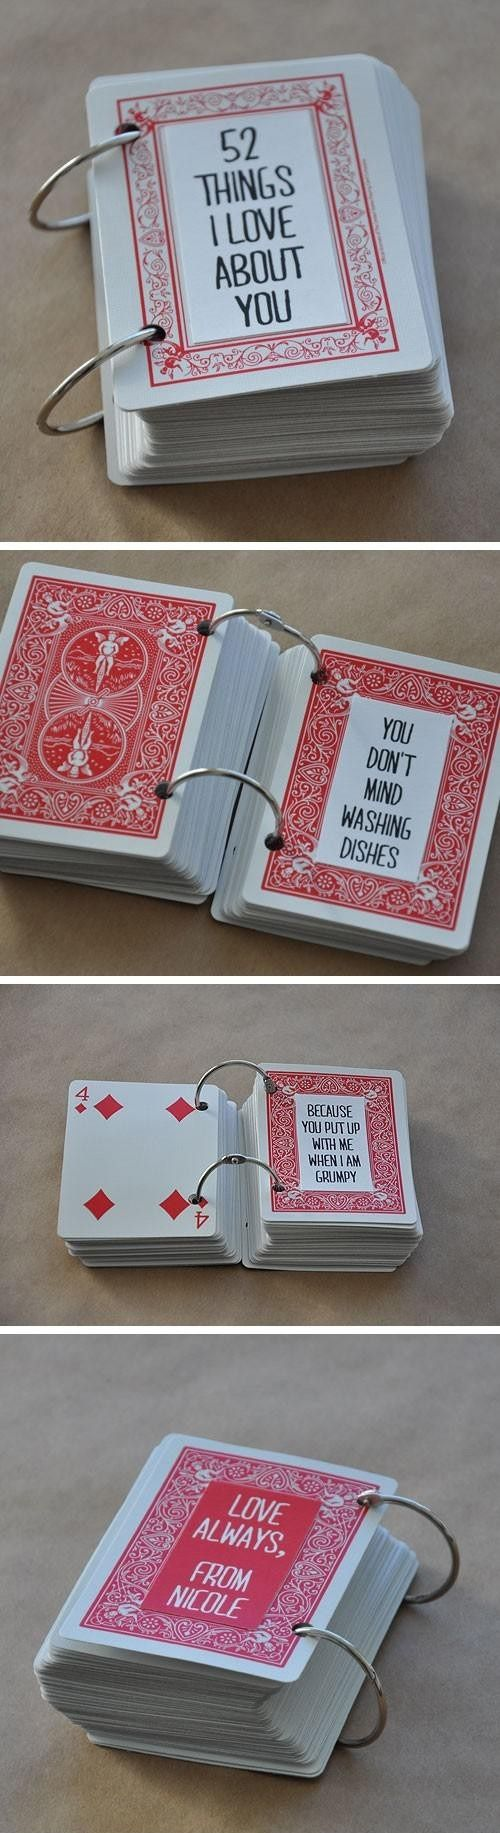 I love this deck of cards as a Valentine's gift! My boyfriend will definetly love these ideas, so try it out yourself as well!